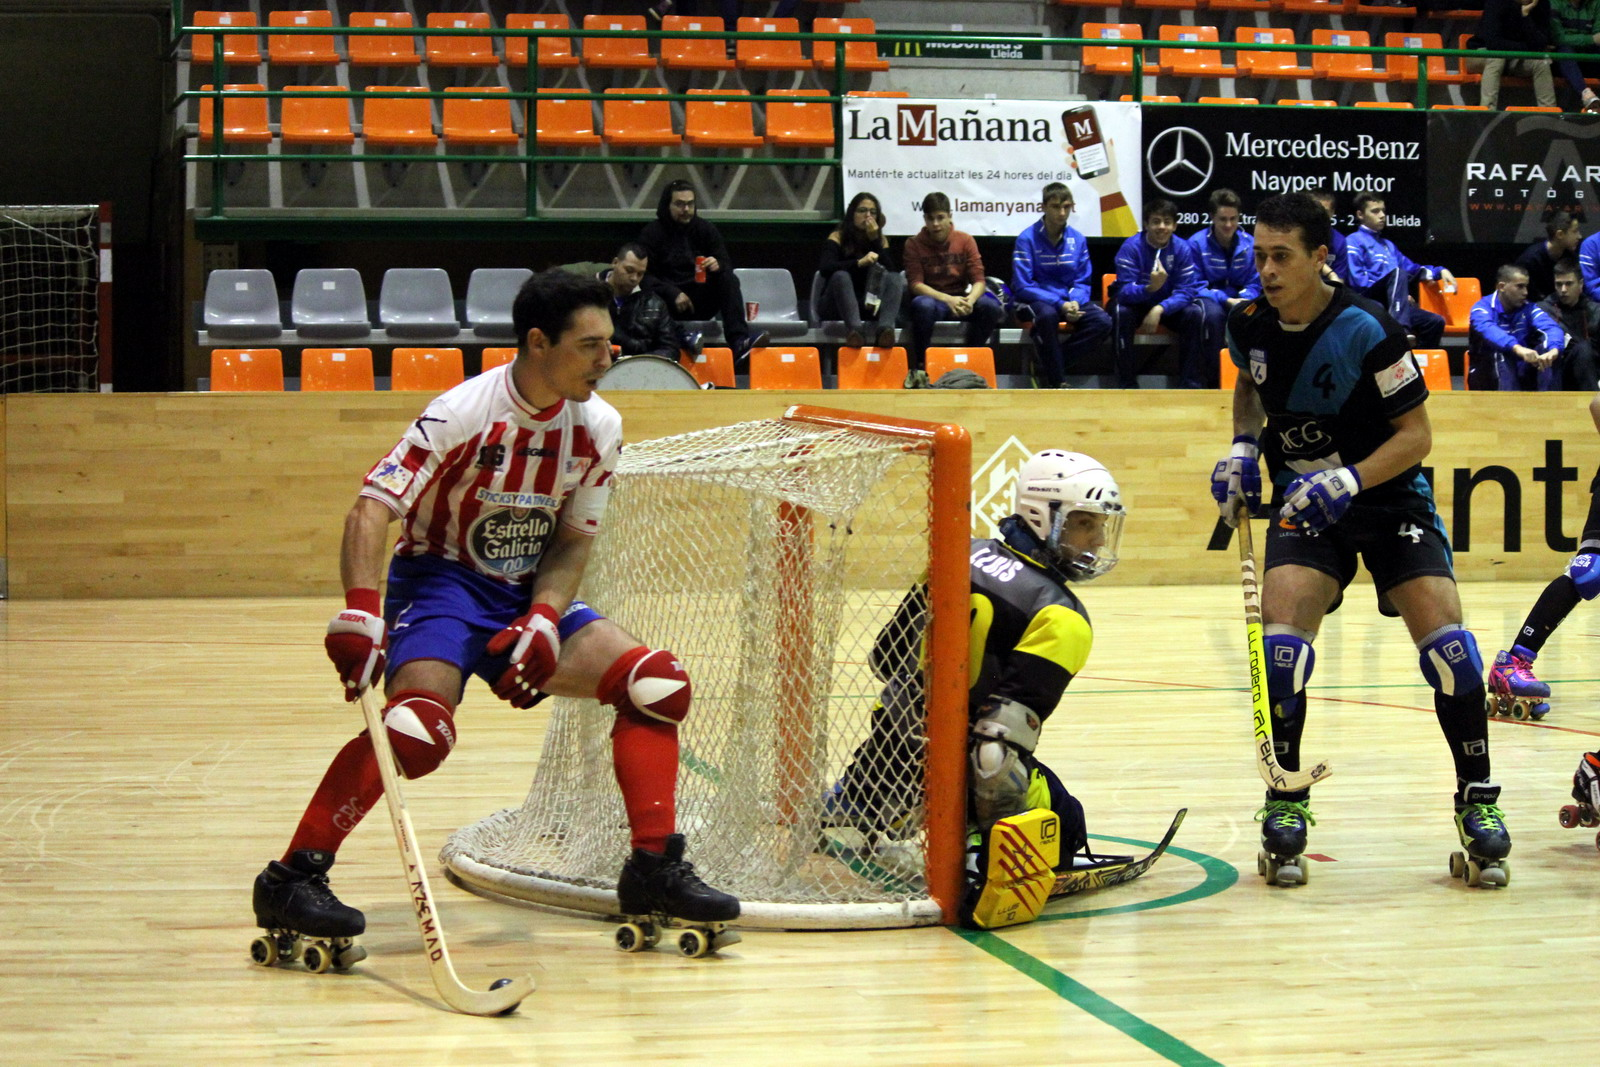 ok Liga 2015/2016 8ª jornada ICG Software Lleida y Hockey Global Clube Patin Cerceda